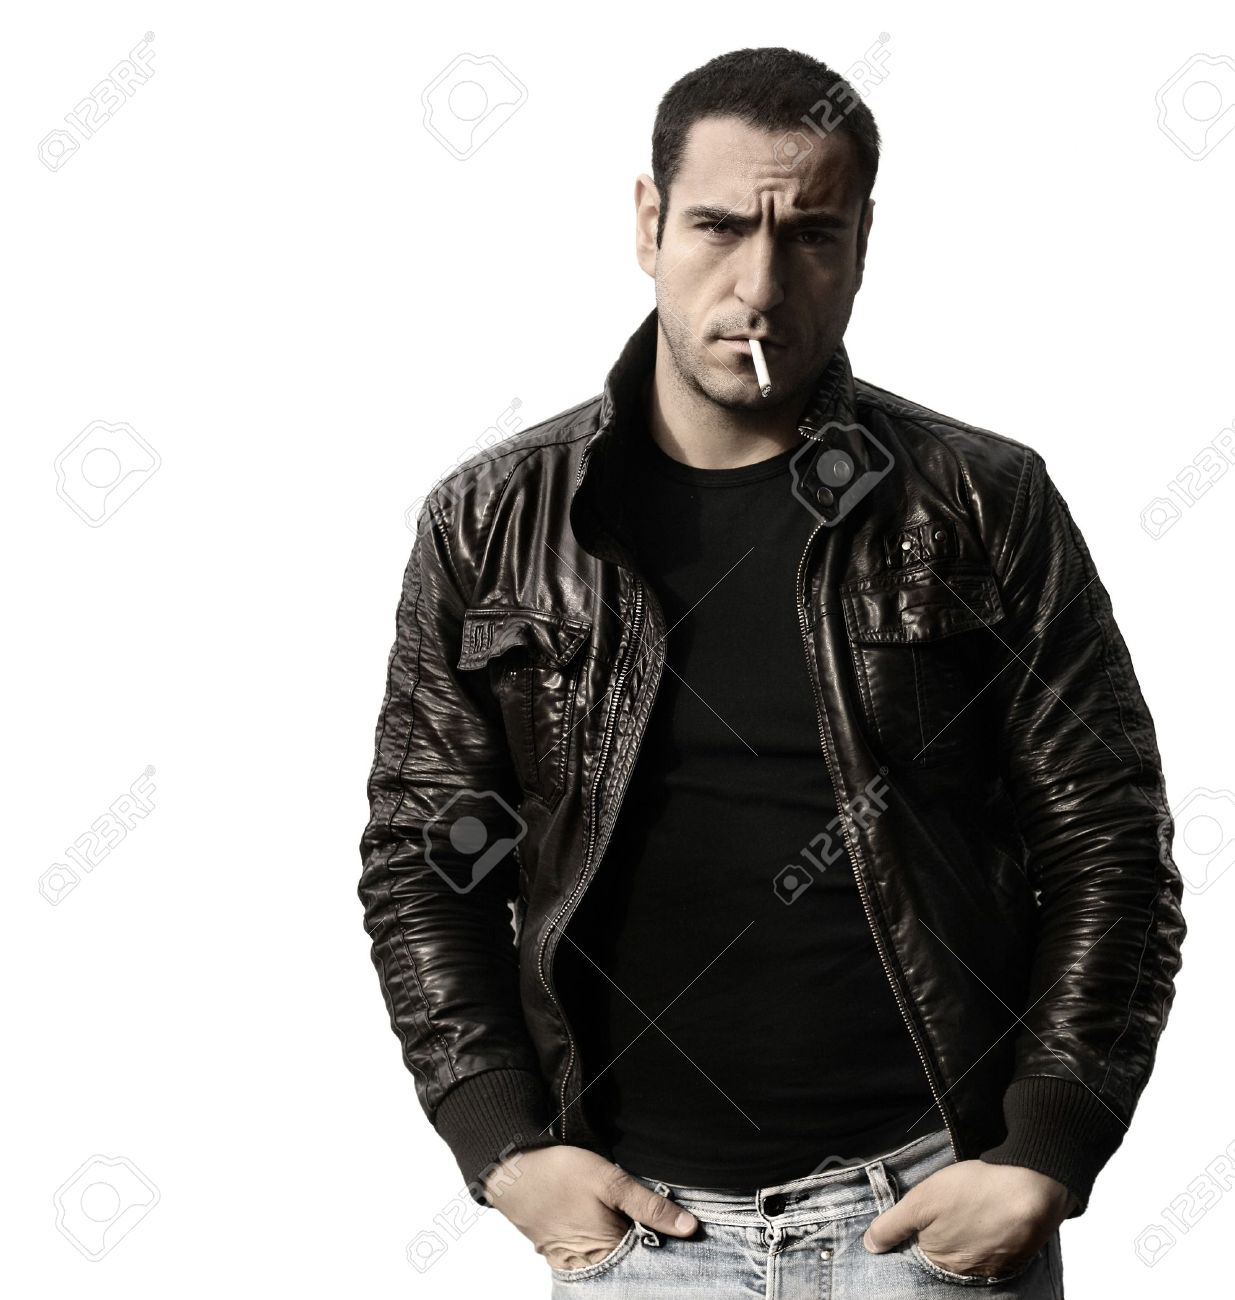 Portrait Of A Rebel Type Guy In Classic Leather Jacket With